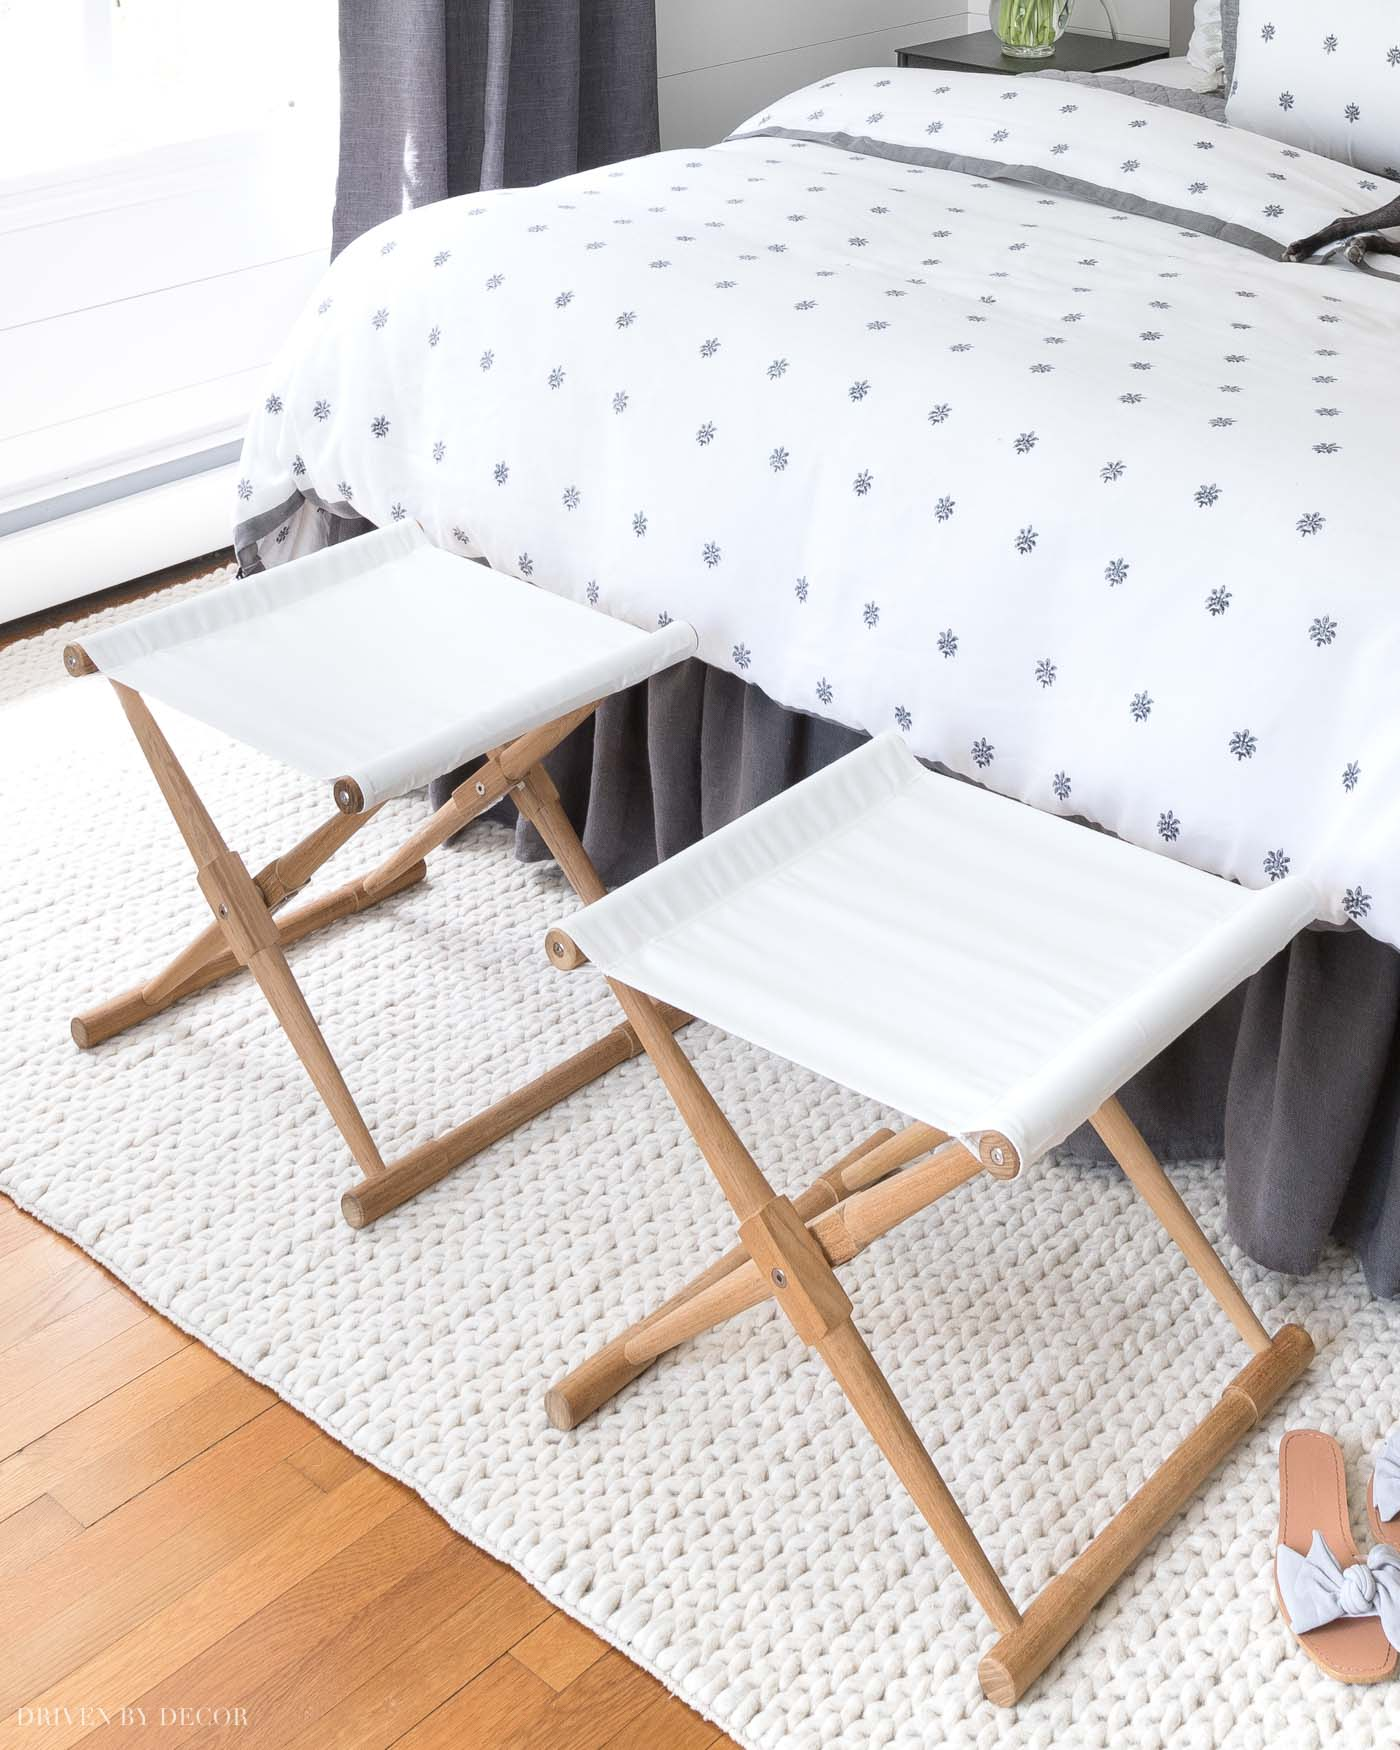 Pair Bed Stools: 8 Simple Steps To Making The Perfect Bed